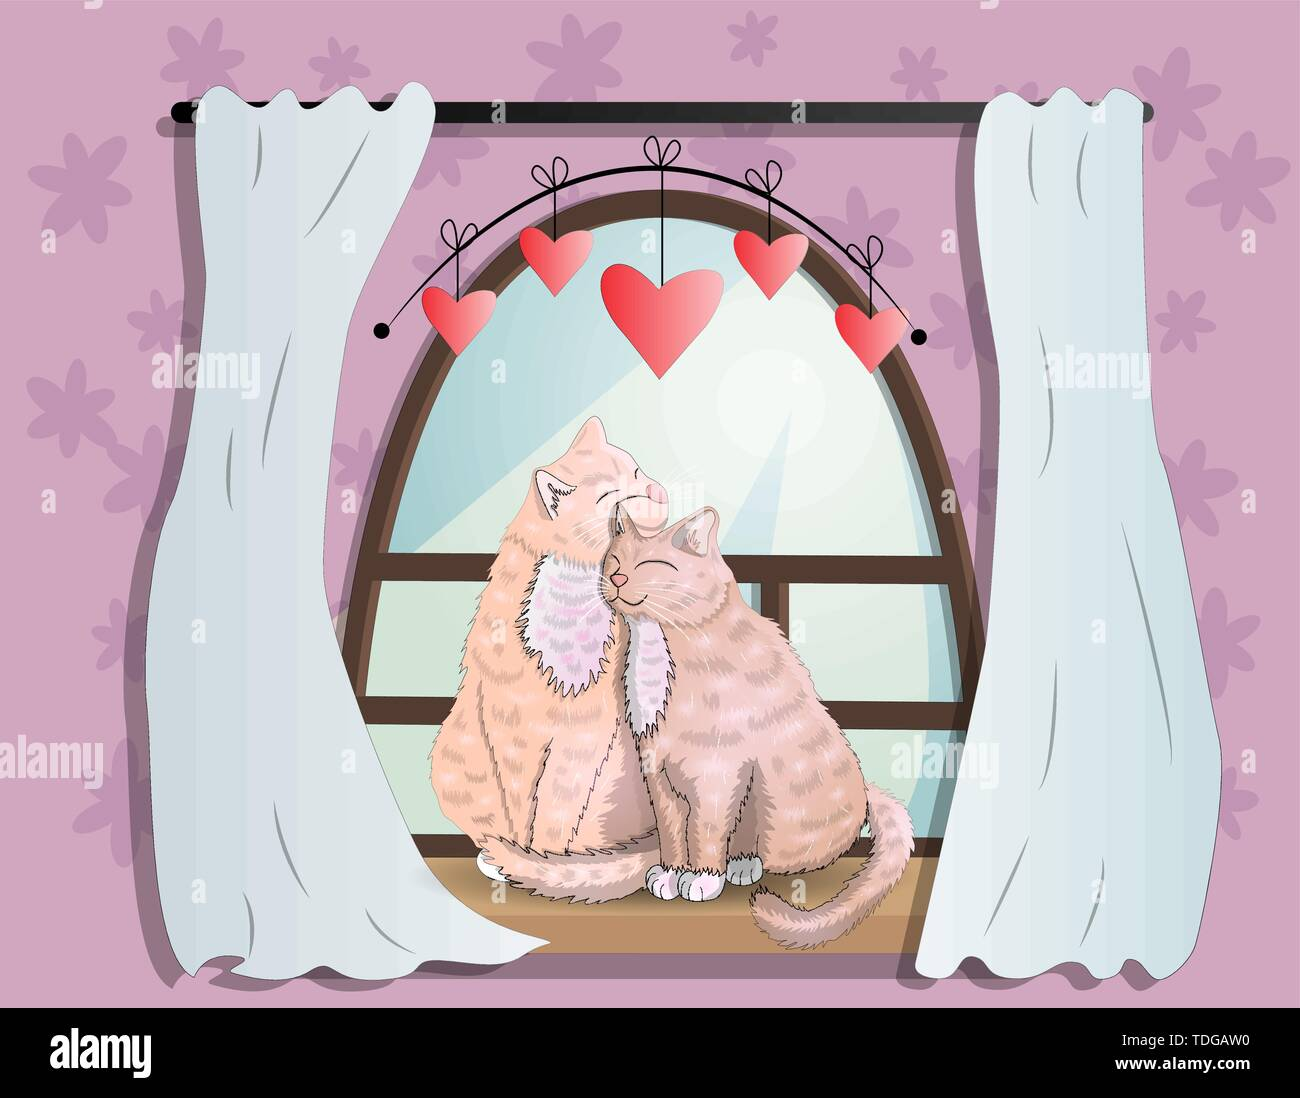 Two cats with heart shaped tails sitting on a windowsill in a room, cuddling each other and looking out a classic arched window in the daytime, celebr - Stock Image